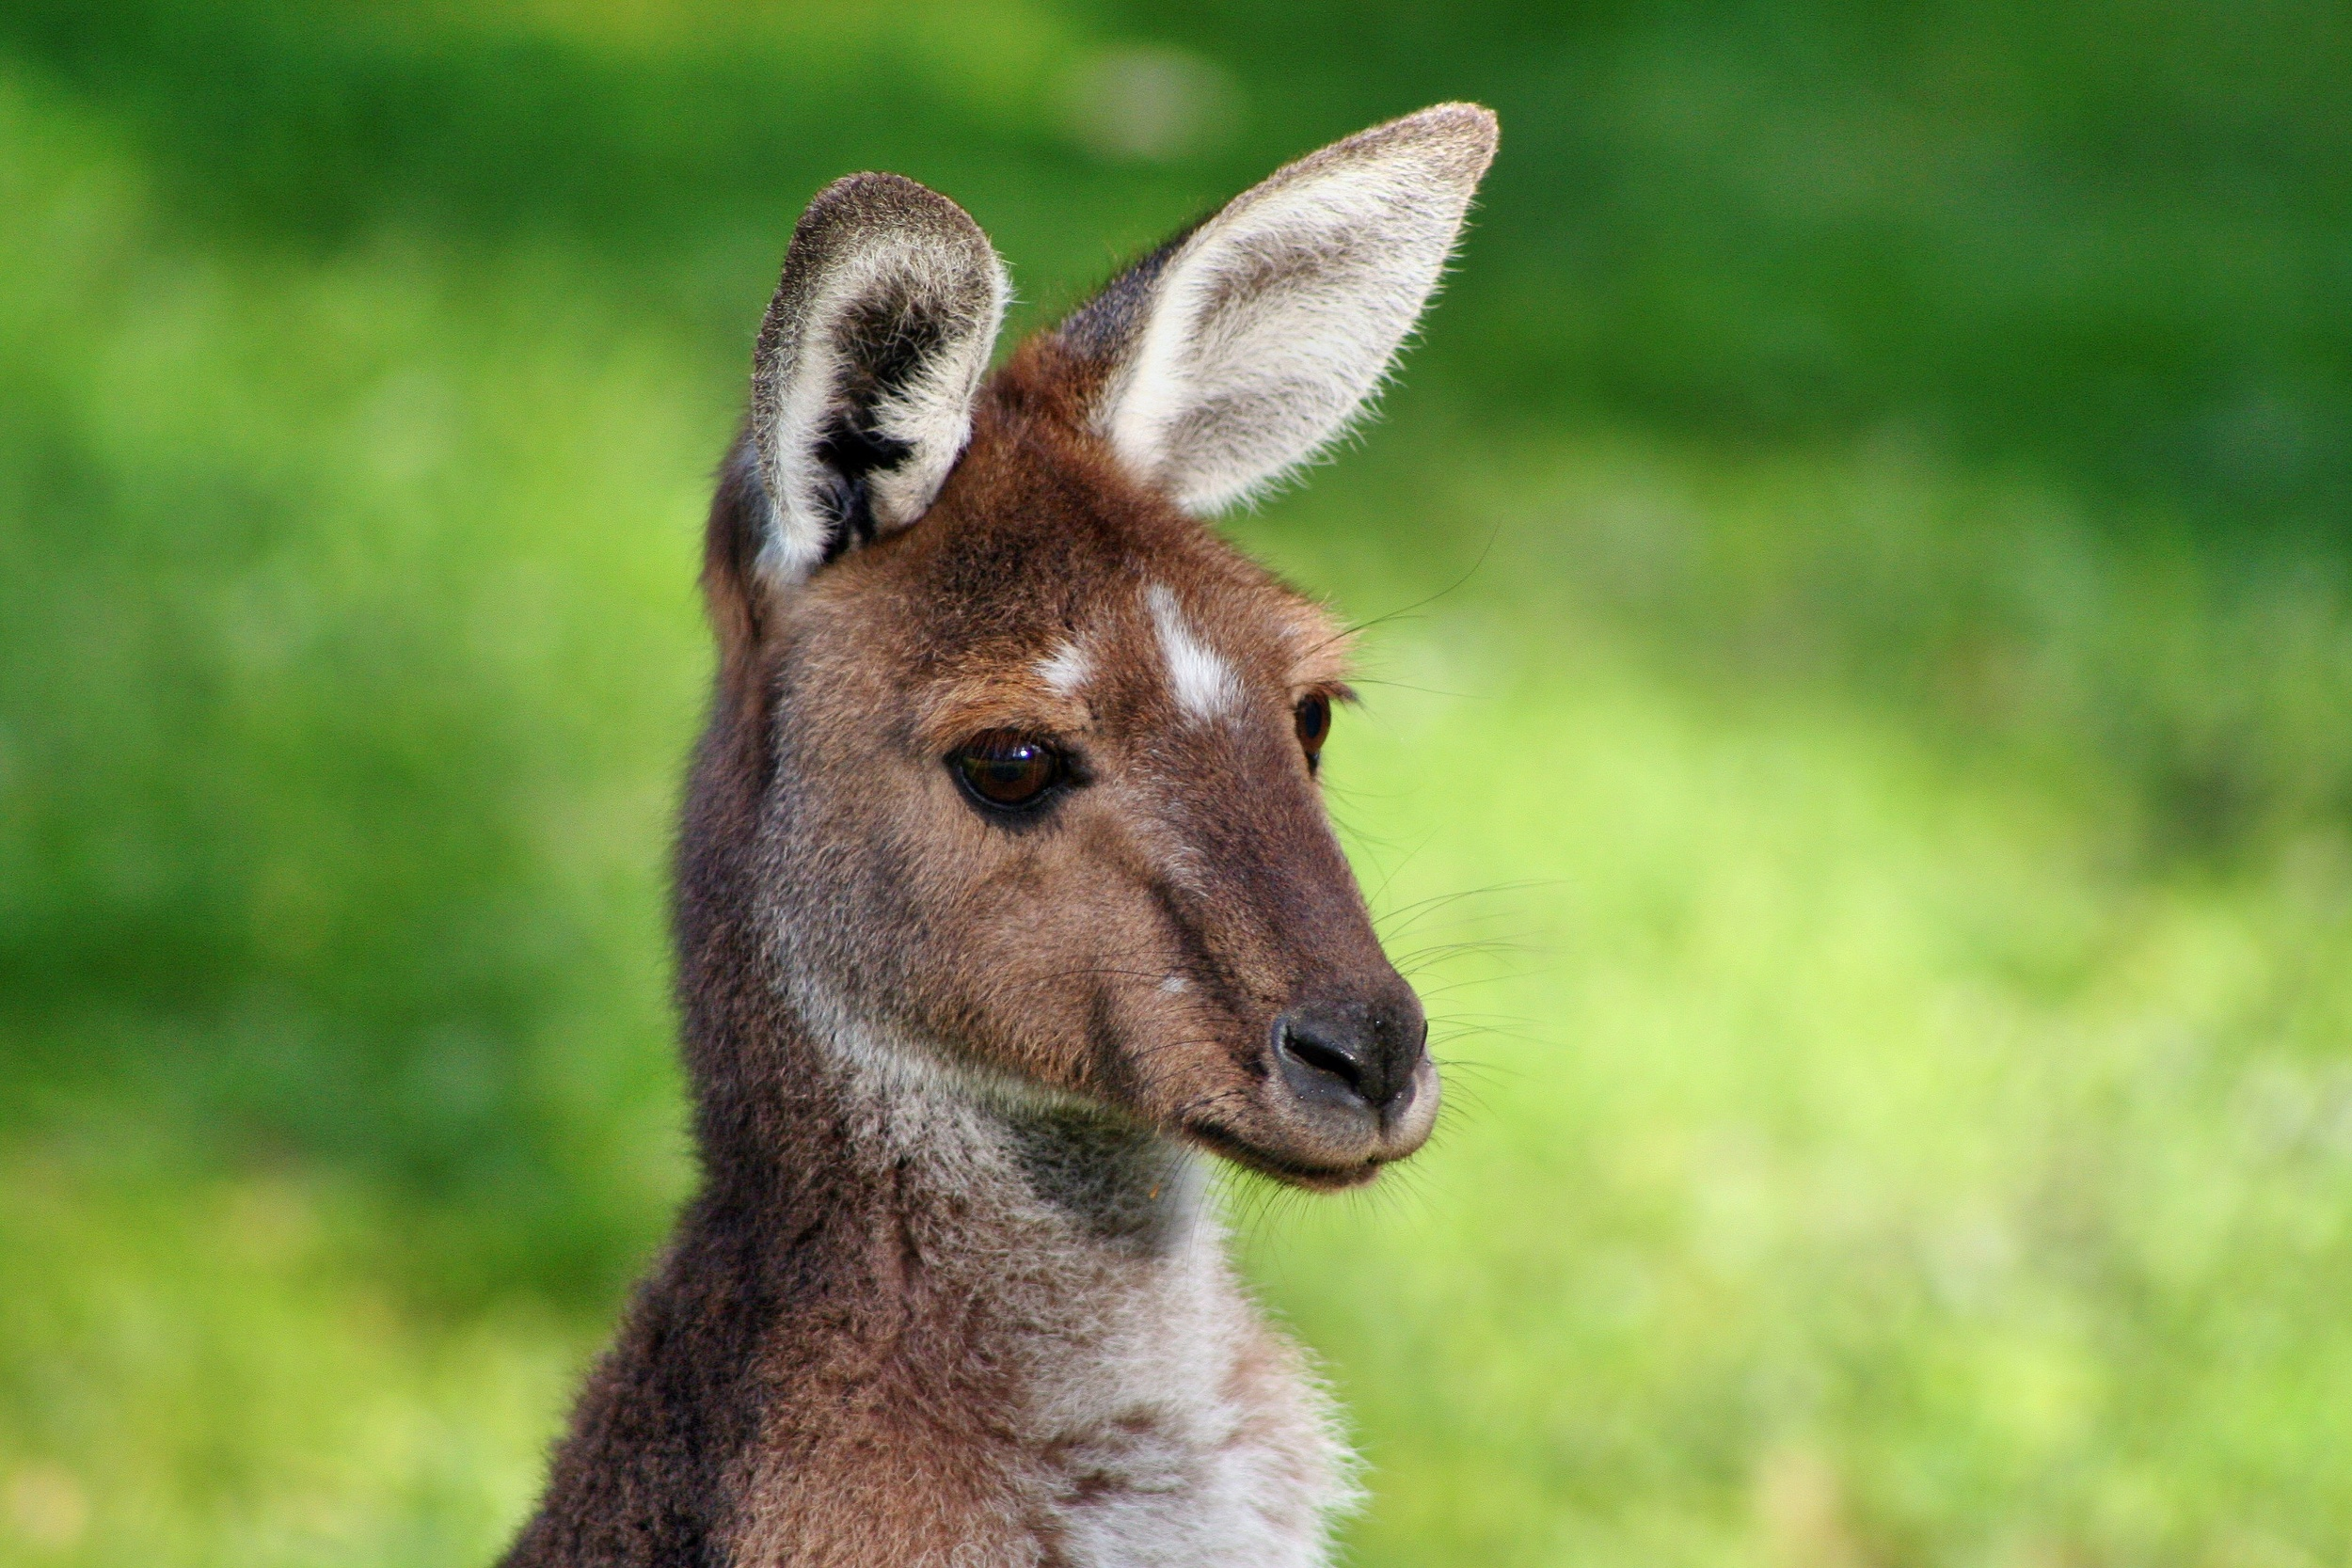 A wallaby in your backyard when you live in Australia?